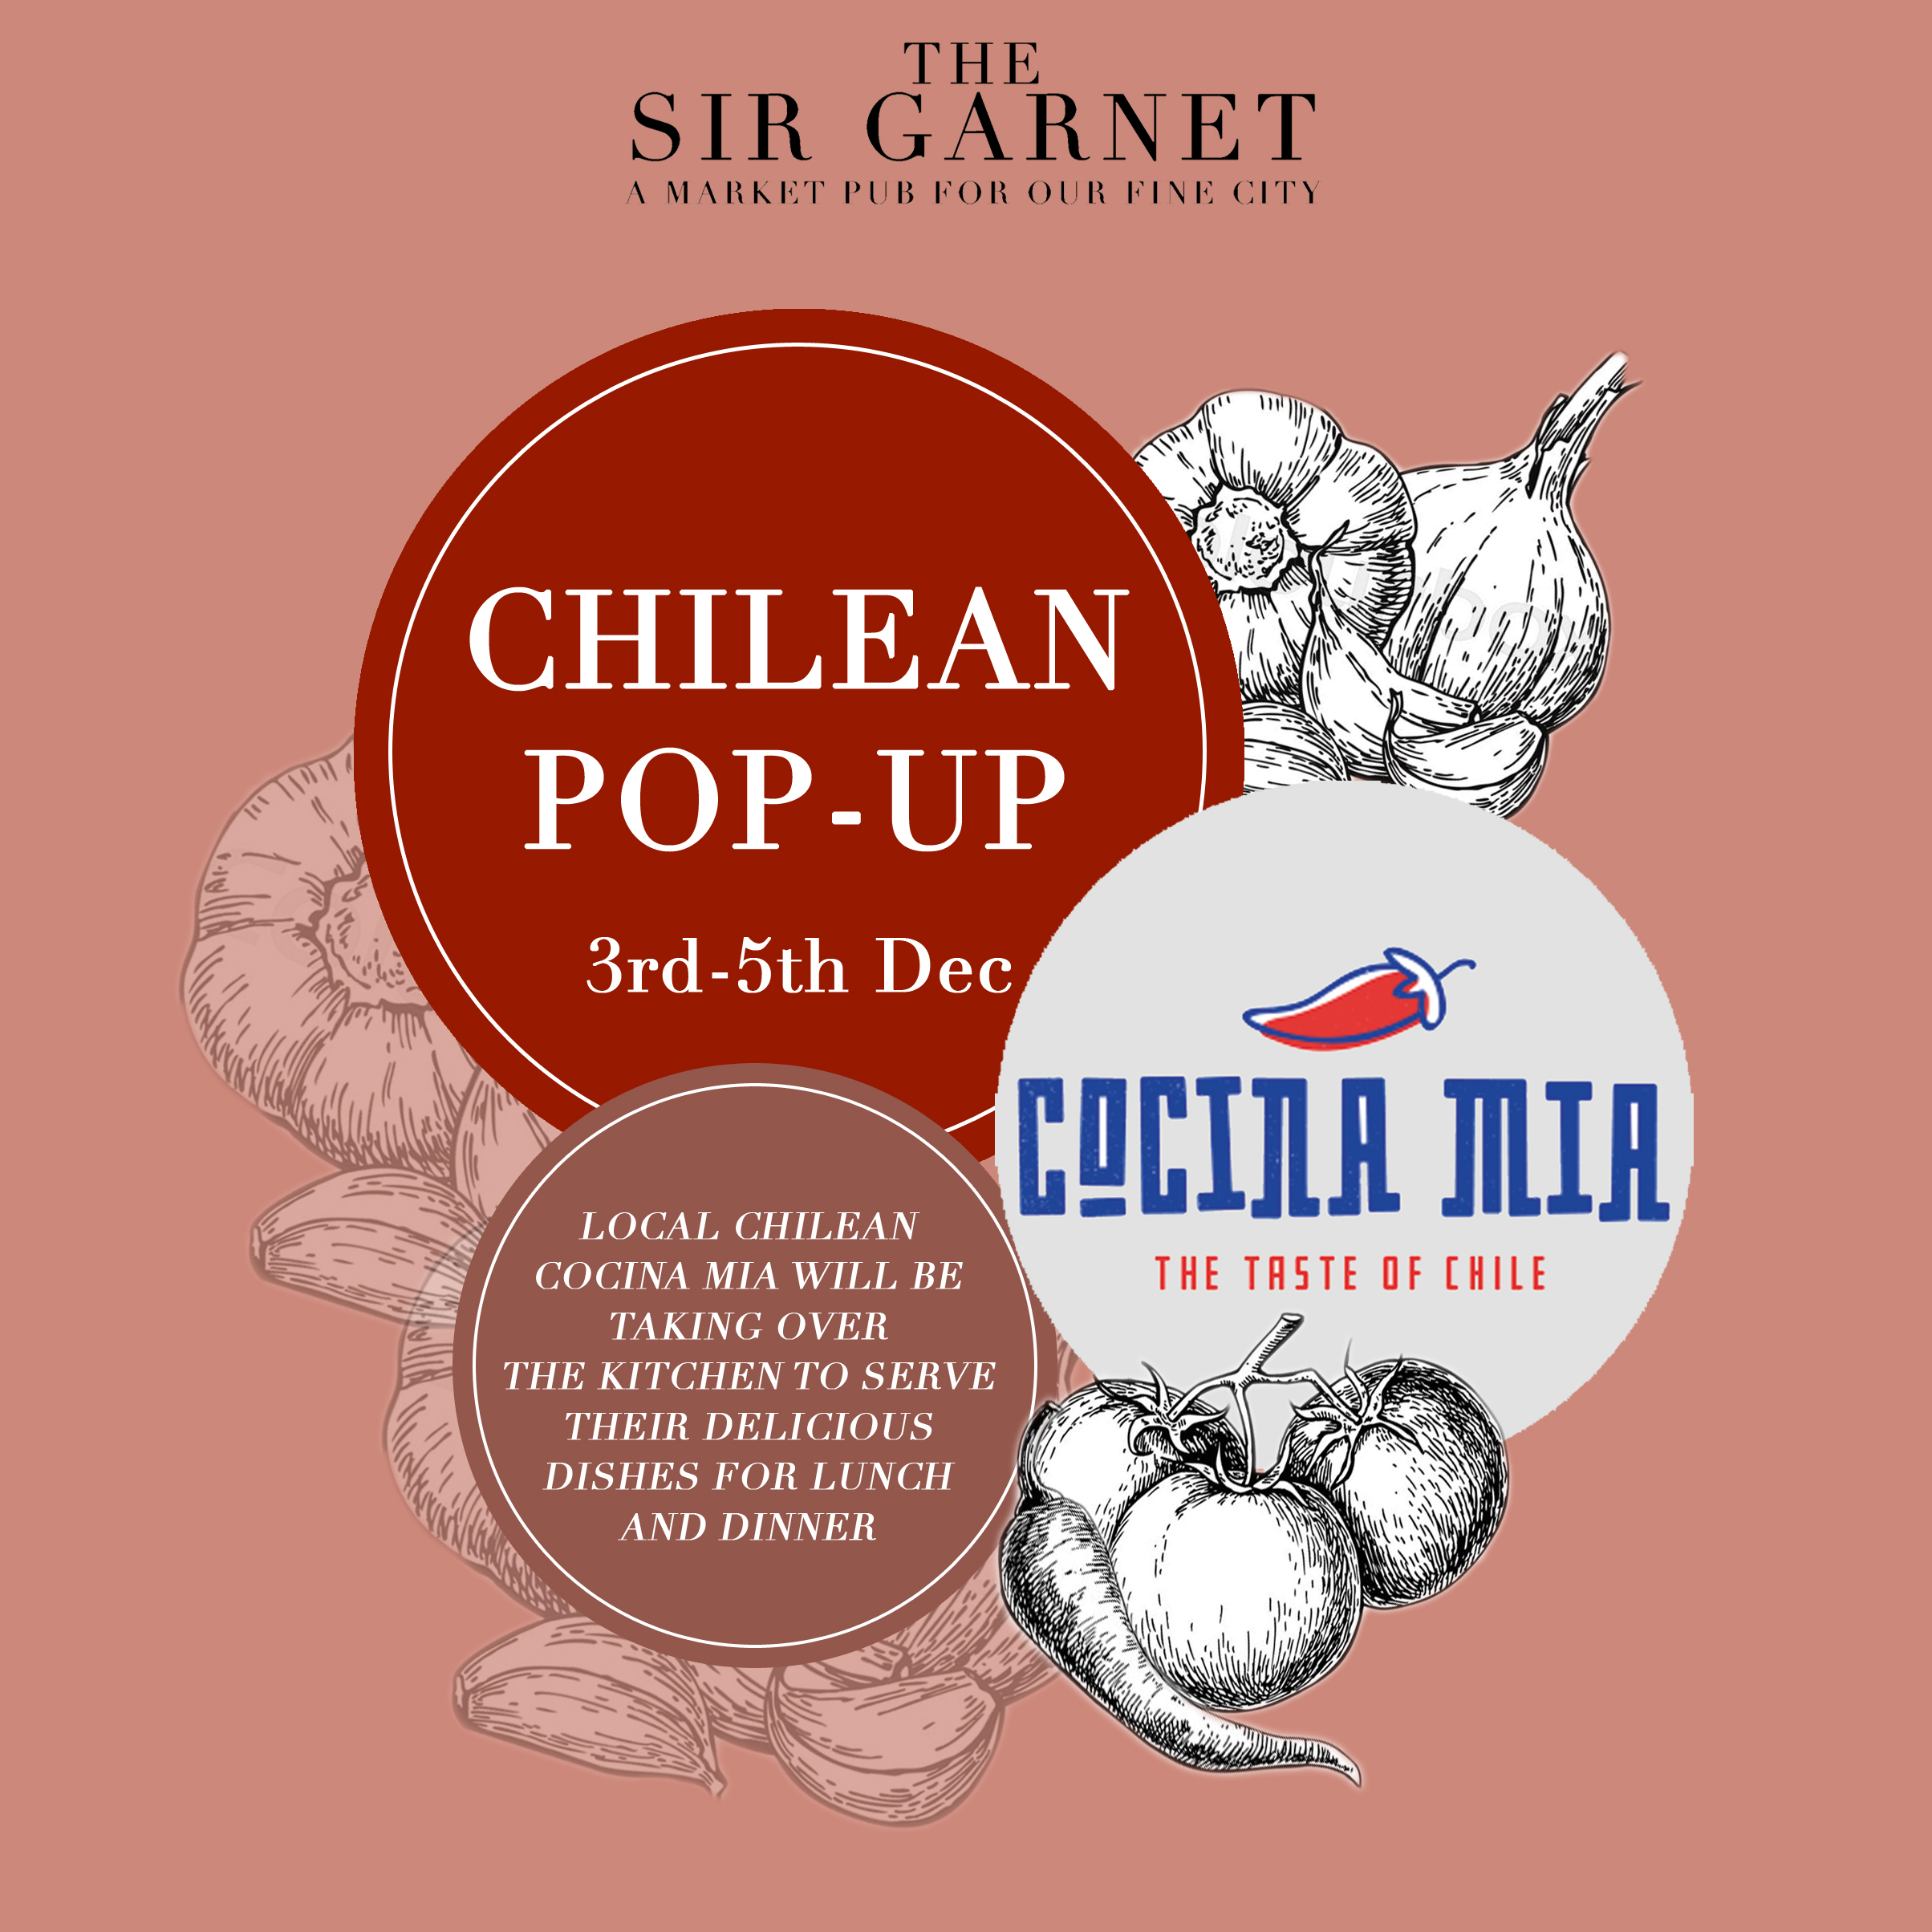 Cocina On The Market Pop Up Chilean With Cocina Mia The Sir Garnet